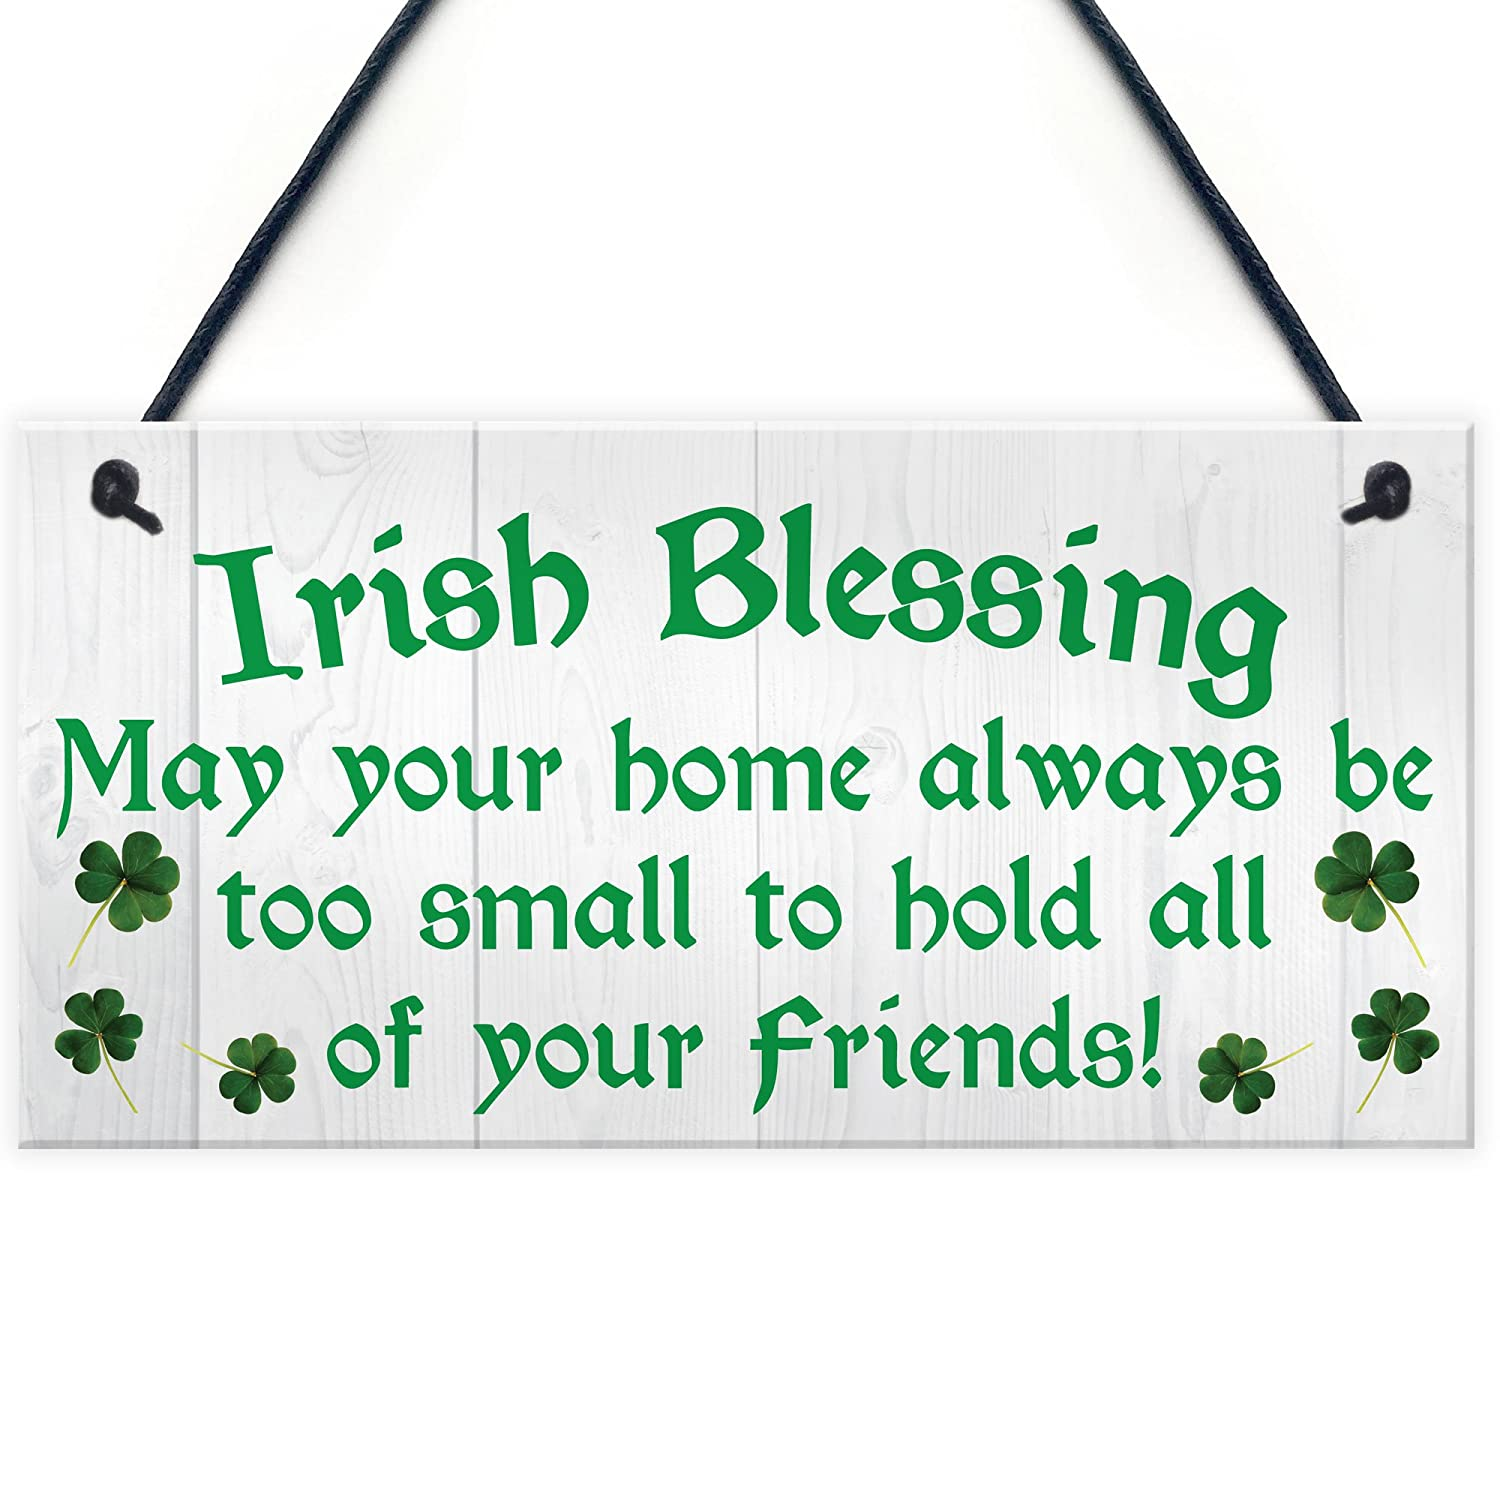 Red Ocean Irish Blessing Friendship Novelty Hanging Plaque Lucky Home St Patricks Day Sign